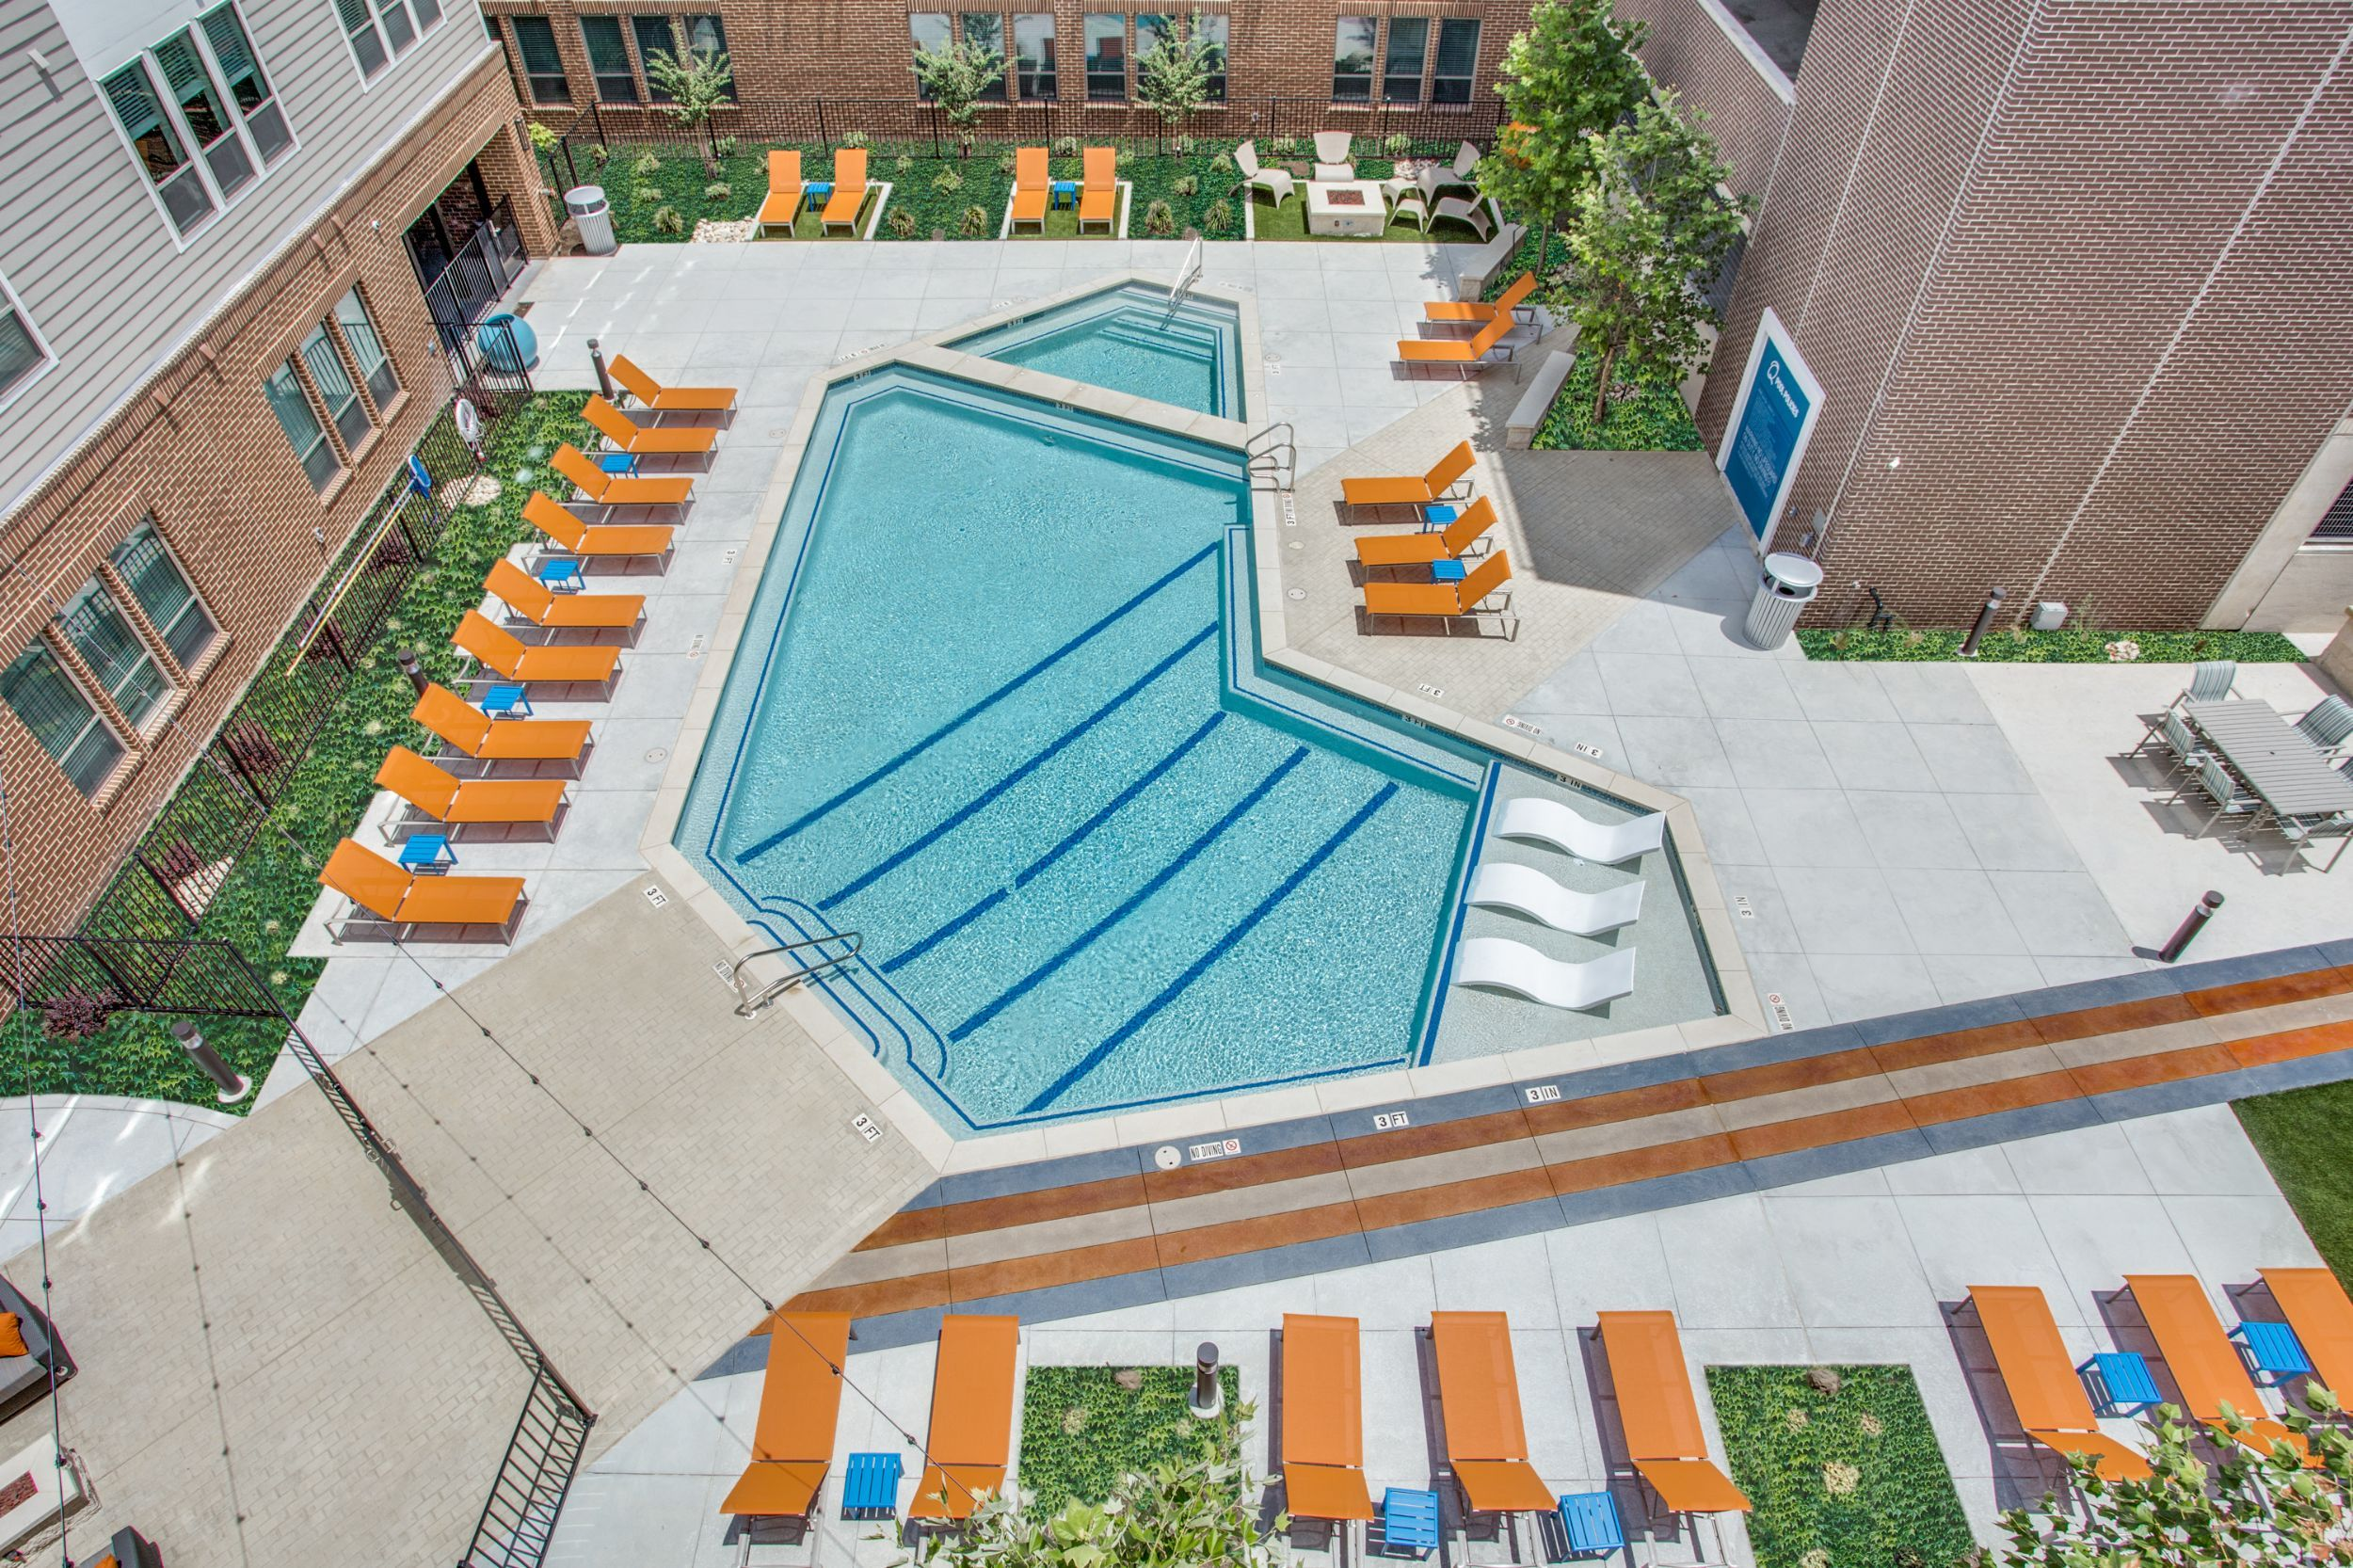 Aerial view of swimming pool with seating